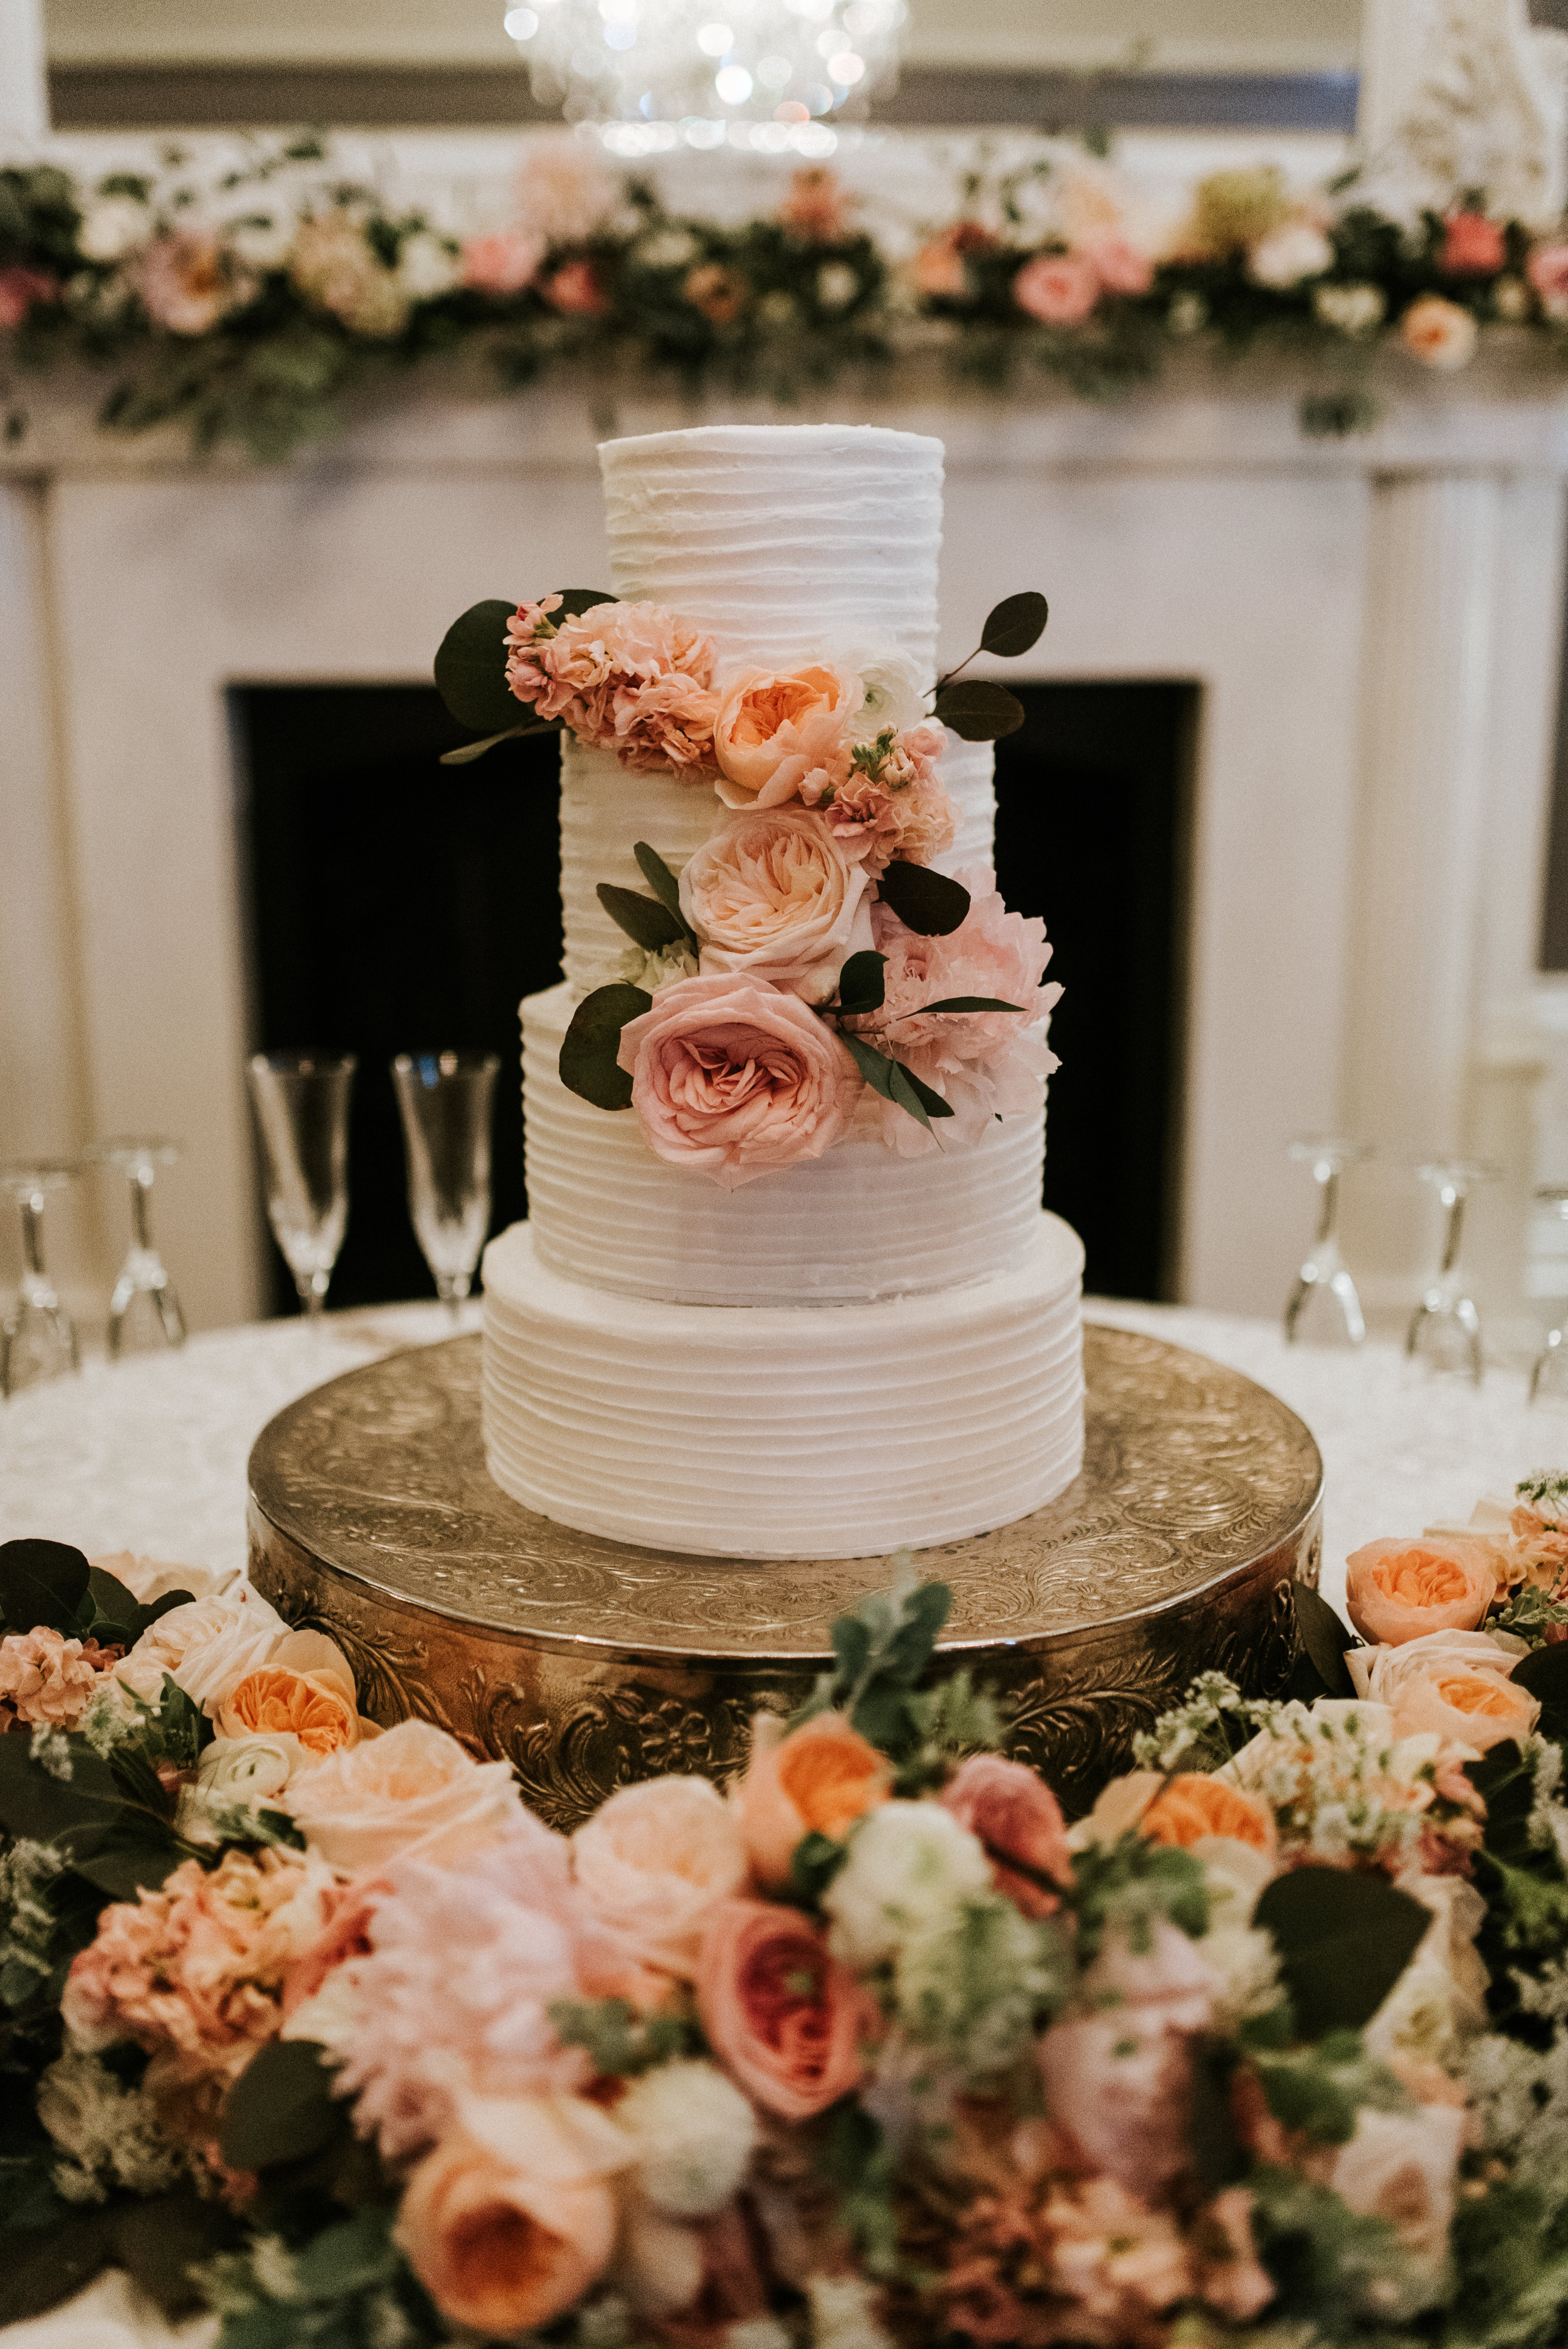 Southern Fete, Southern Wedding, Bride's cake, Root Floral Design, Blush and Coral Flowers, Hannah Mulligan Photography